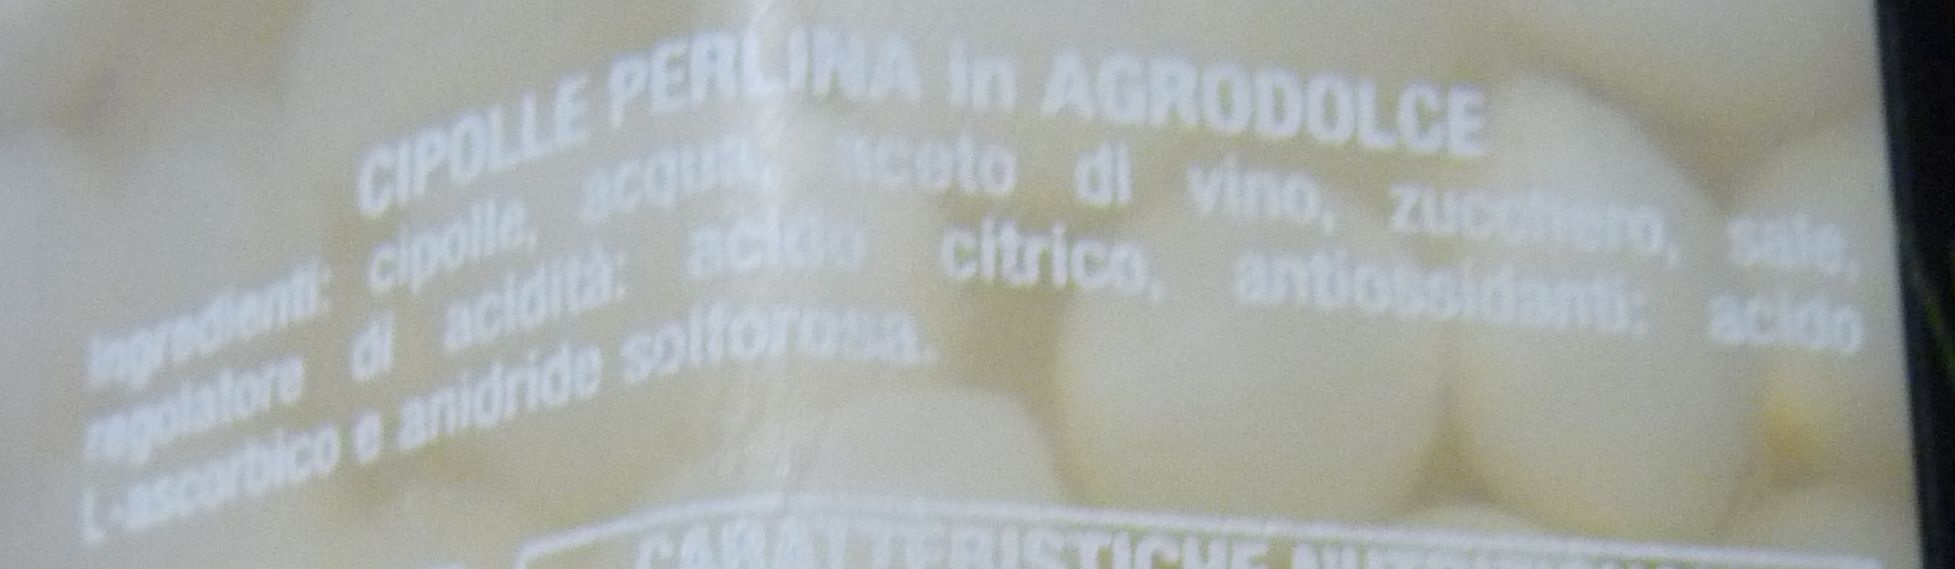 Golosi e sfiziosi Cipolle Perlina in agrodolce - Ingrédients